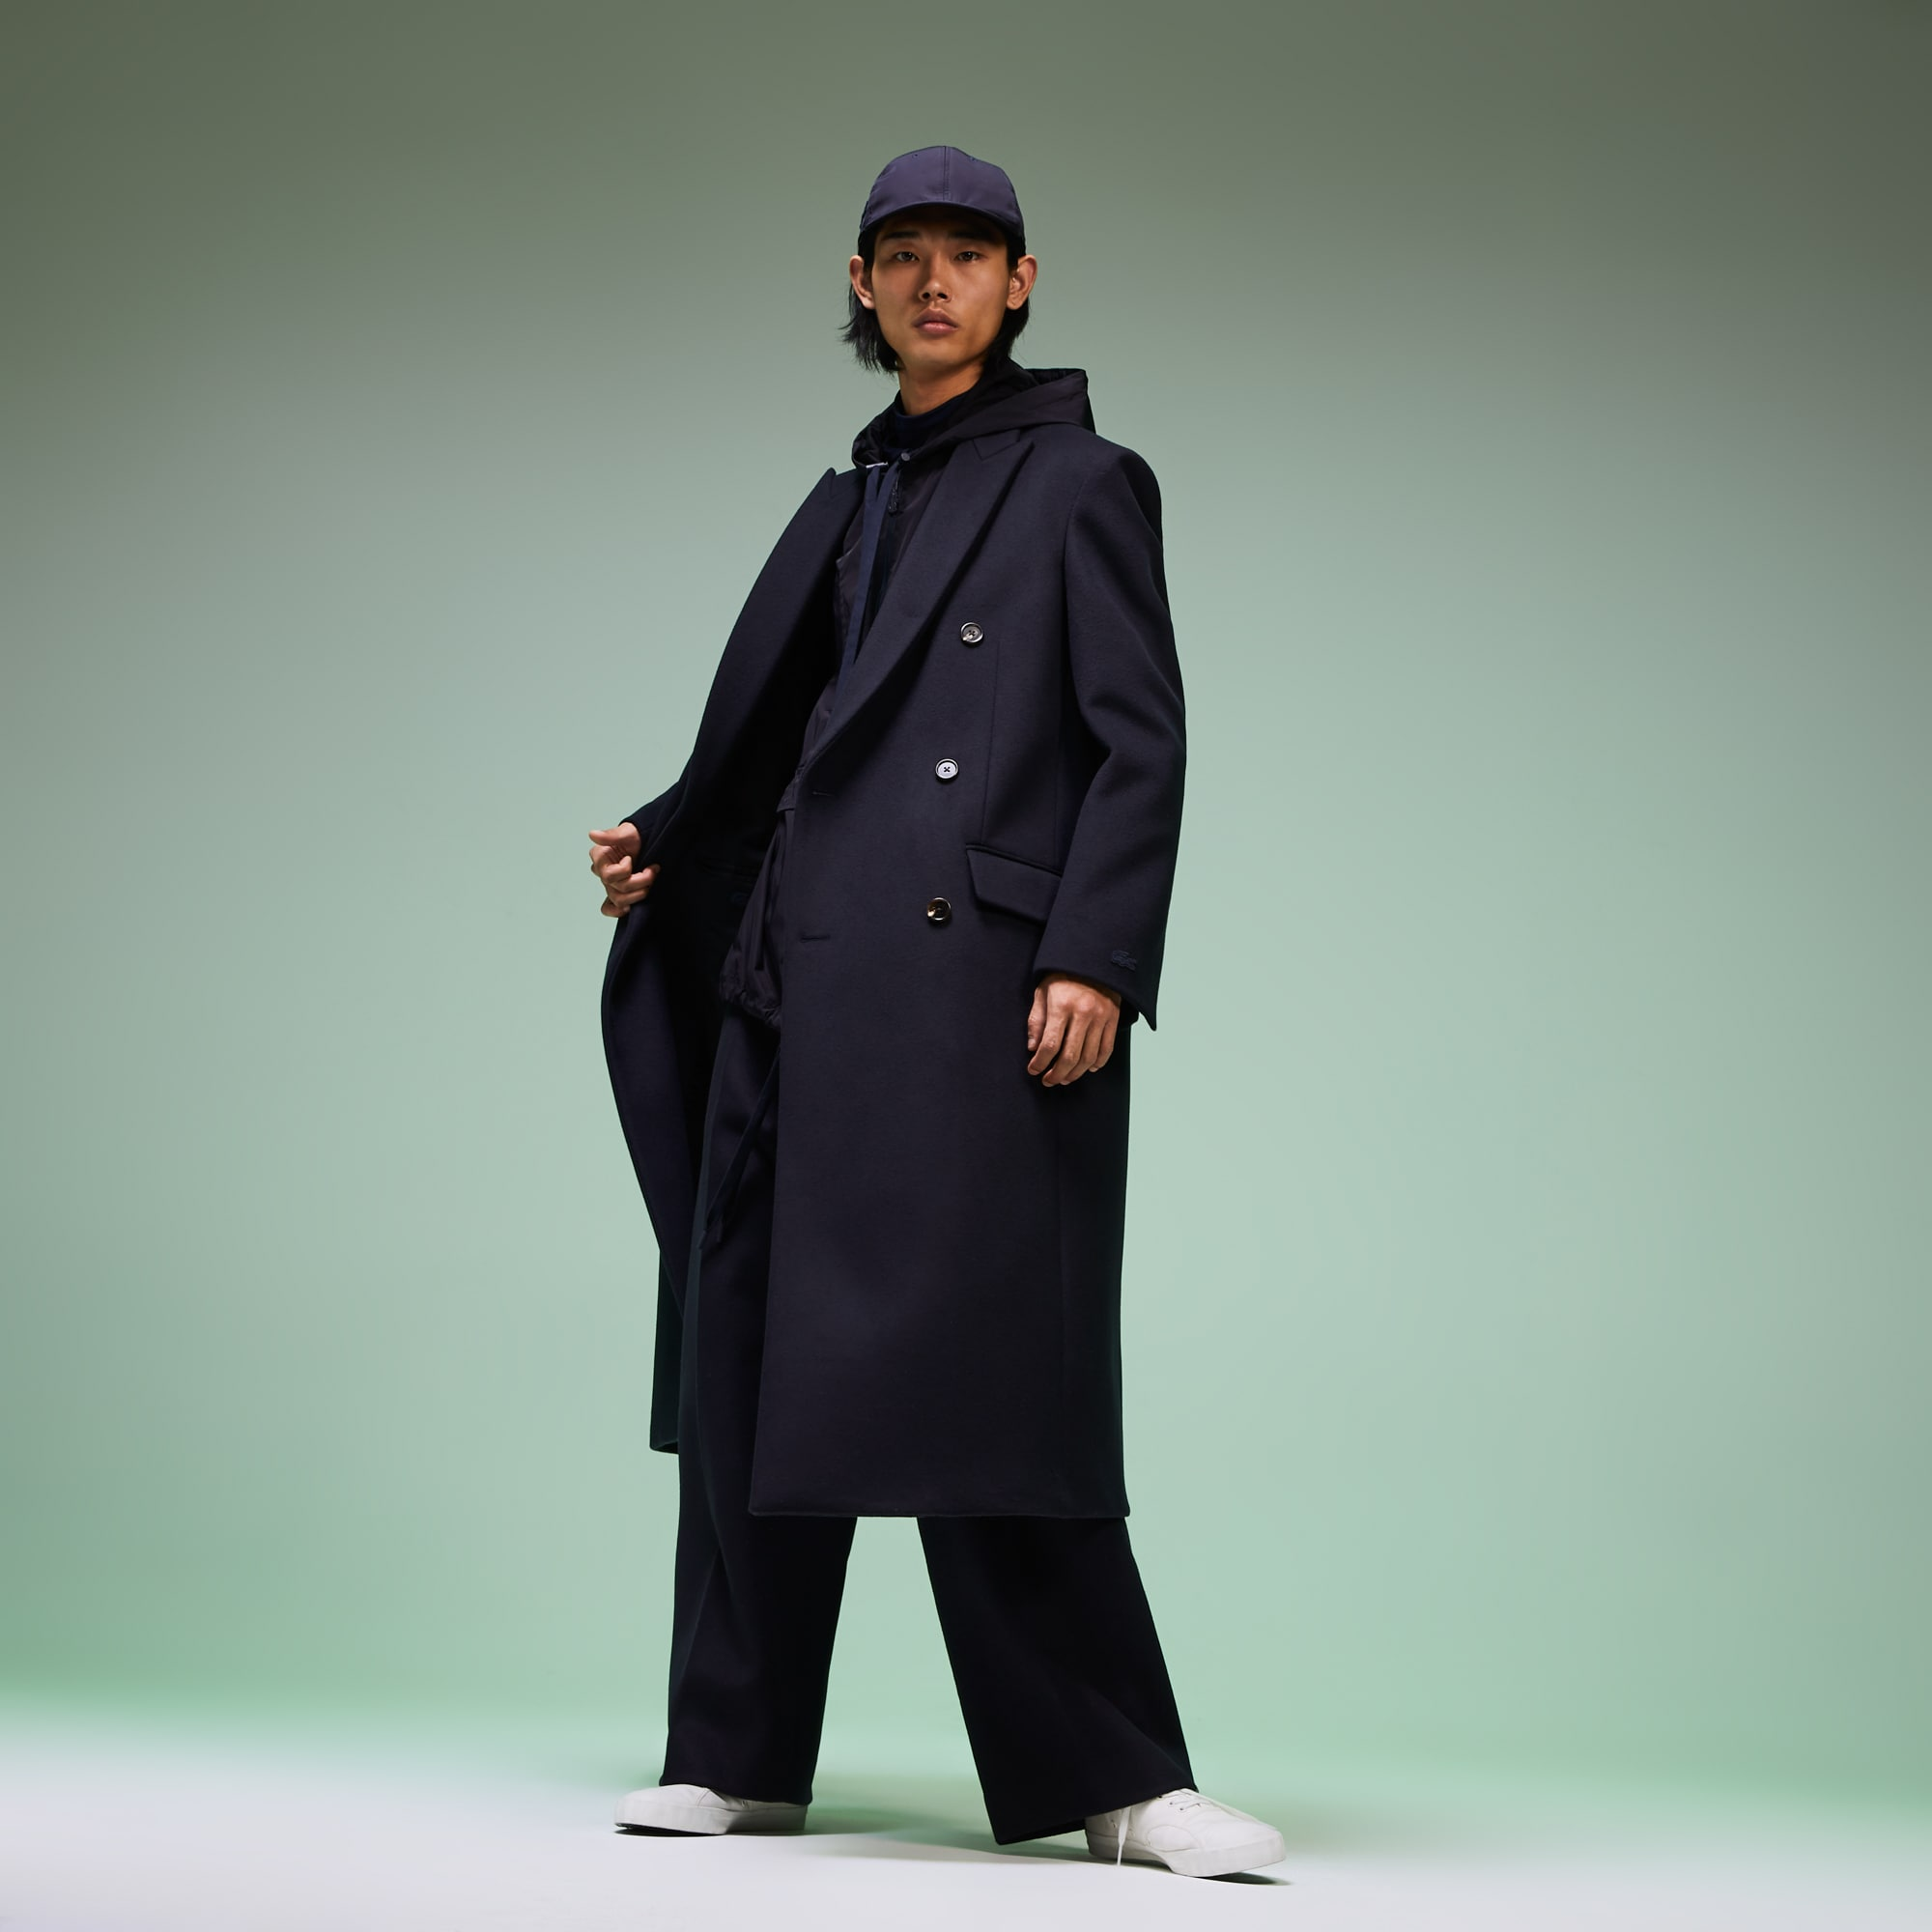 Lacoste Coats Men's Fashion Show Double-Breasted Coat